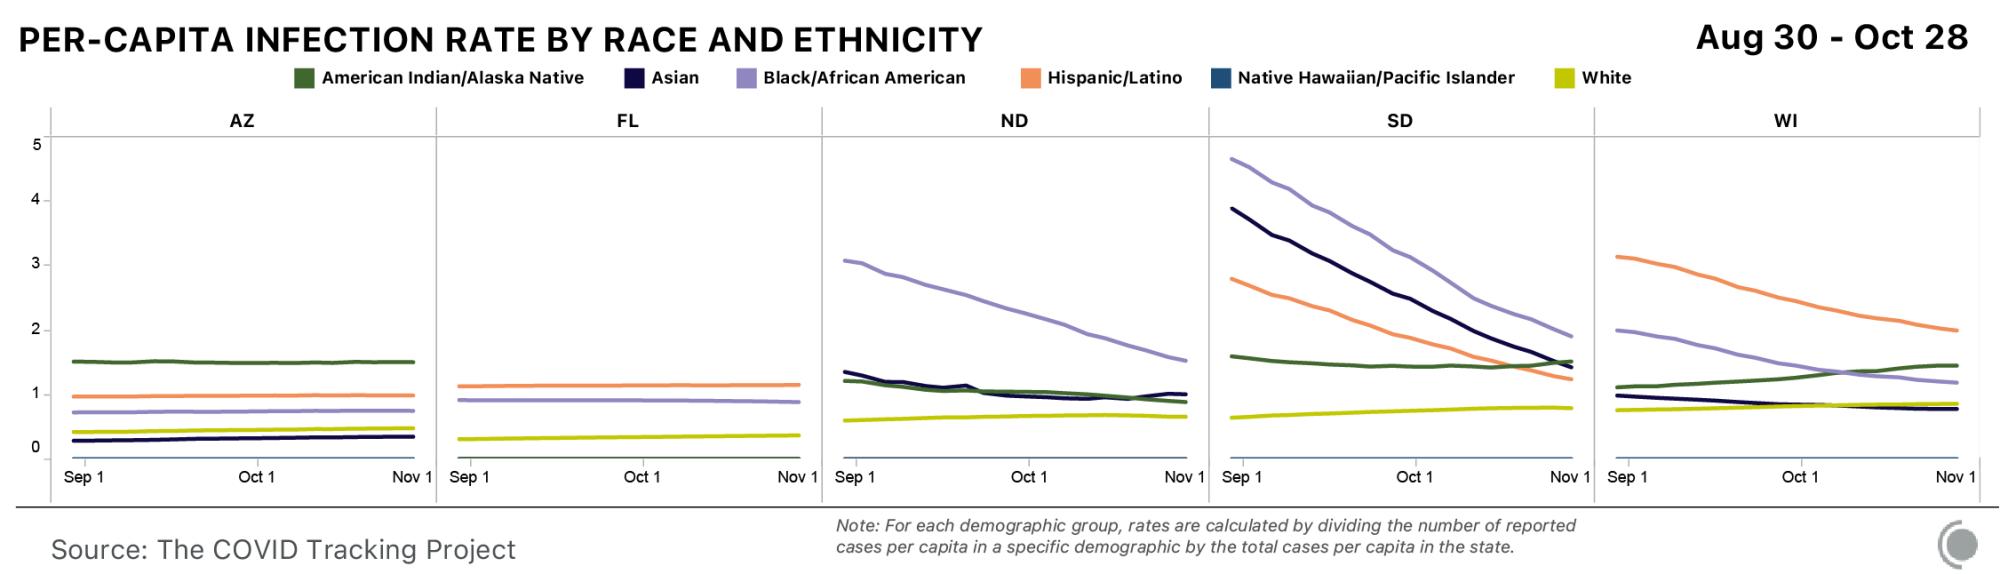 Per capita infection rate by race and ethnicity for Arizona, Florida, North Dakota, South Dakota, and Wisconsin. Per capita infections have generally decreased for Black, Latinx, and Asian people. Data is from August 30 through October 28.